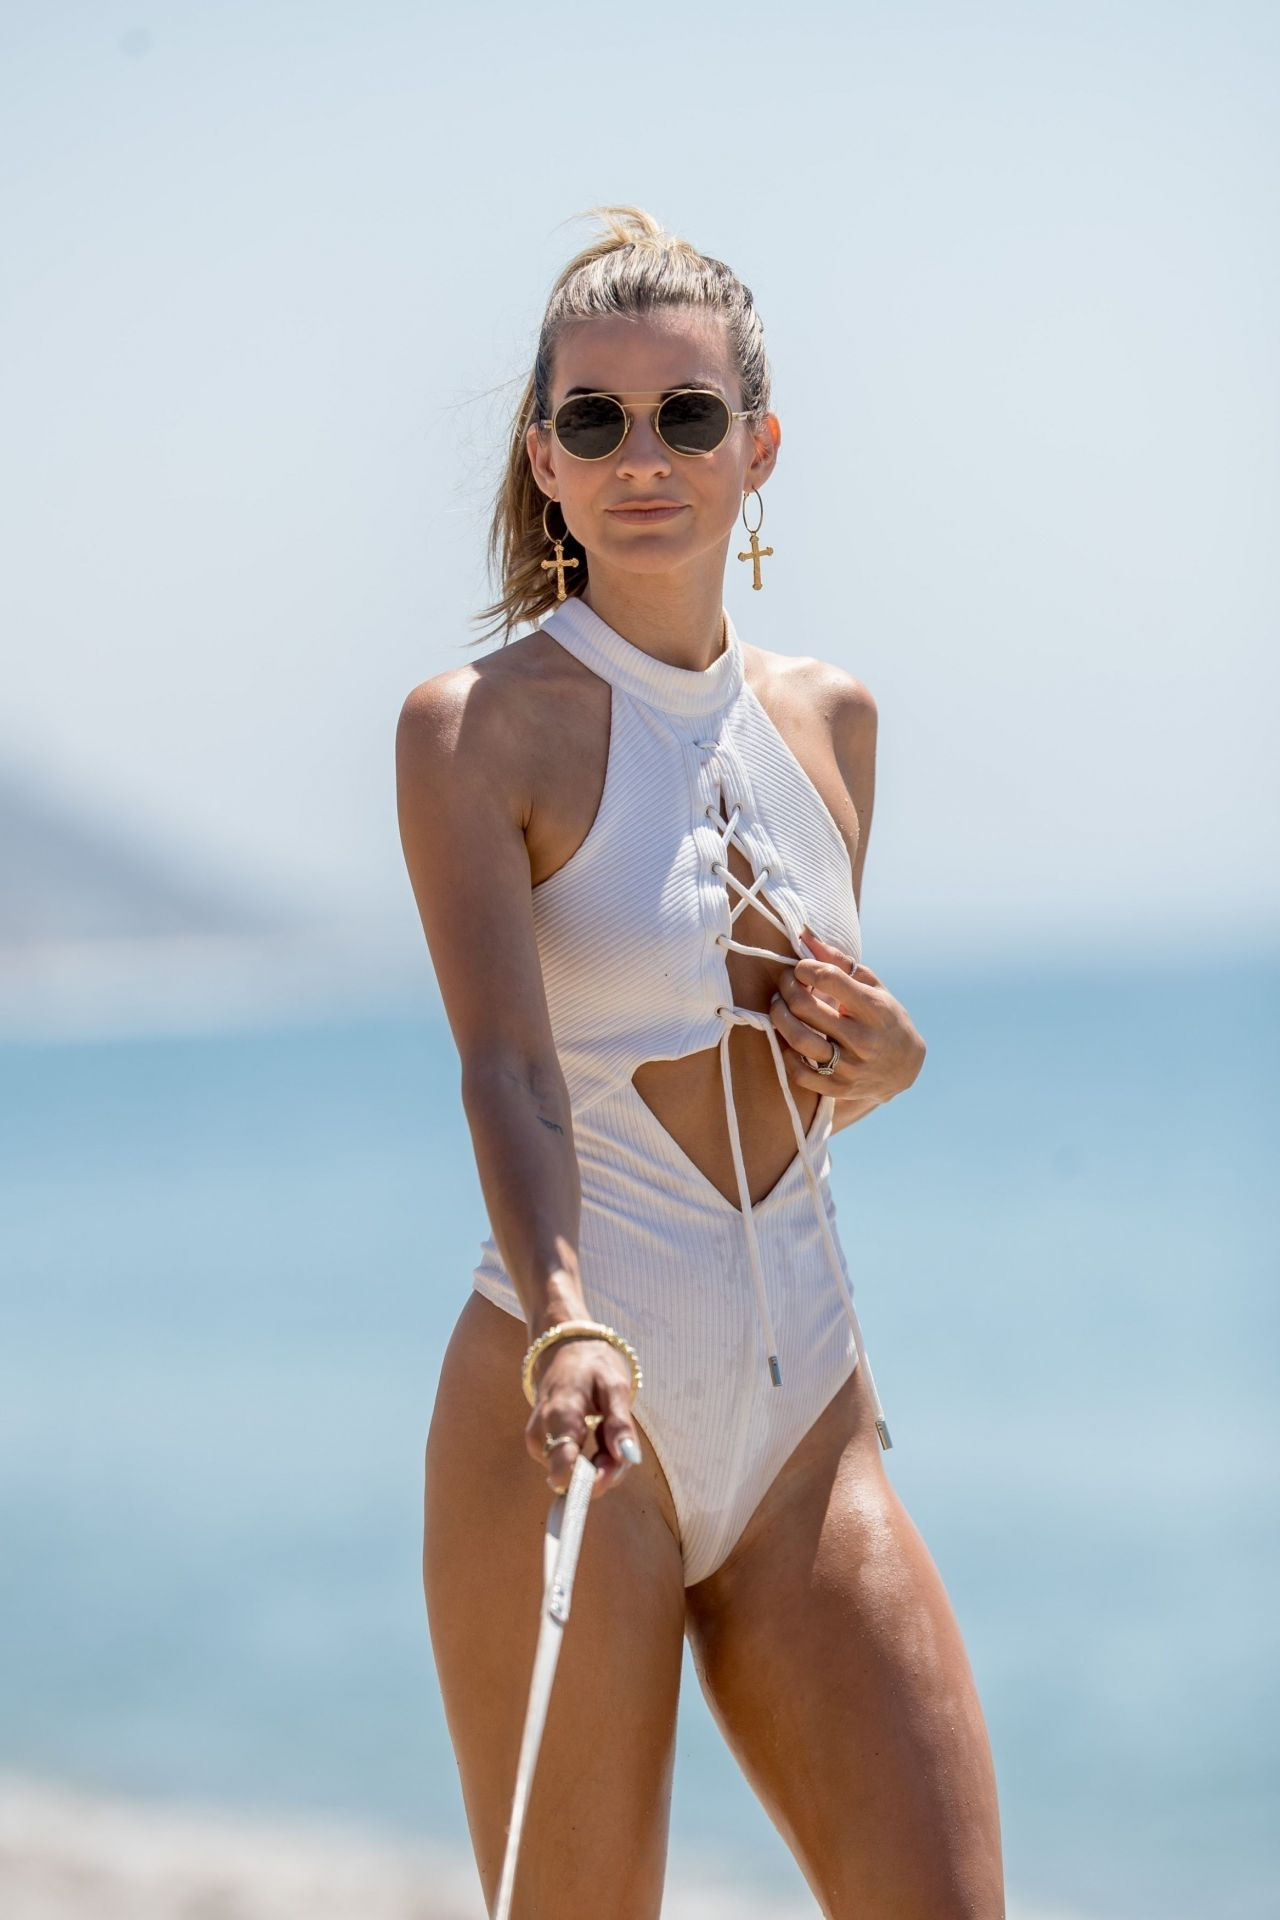 Rachel Mccord In Swimsuit In Malibu 08 03 2018